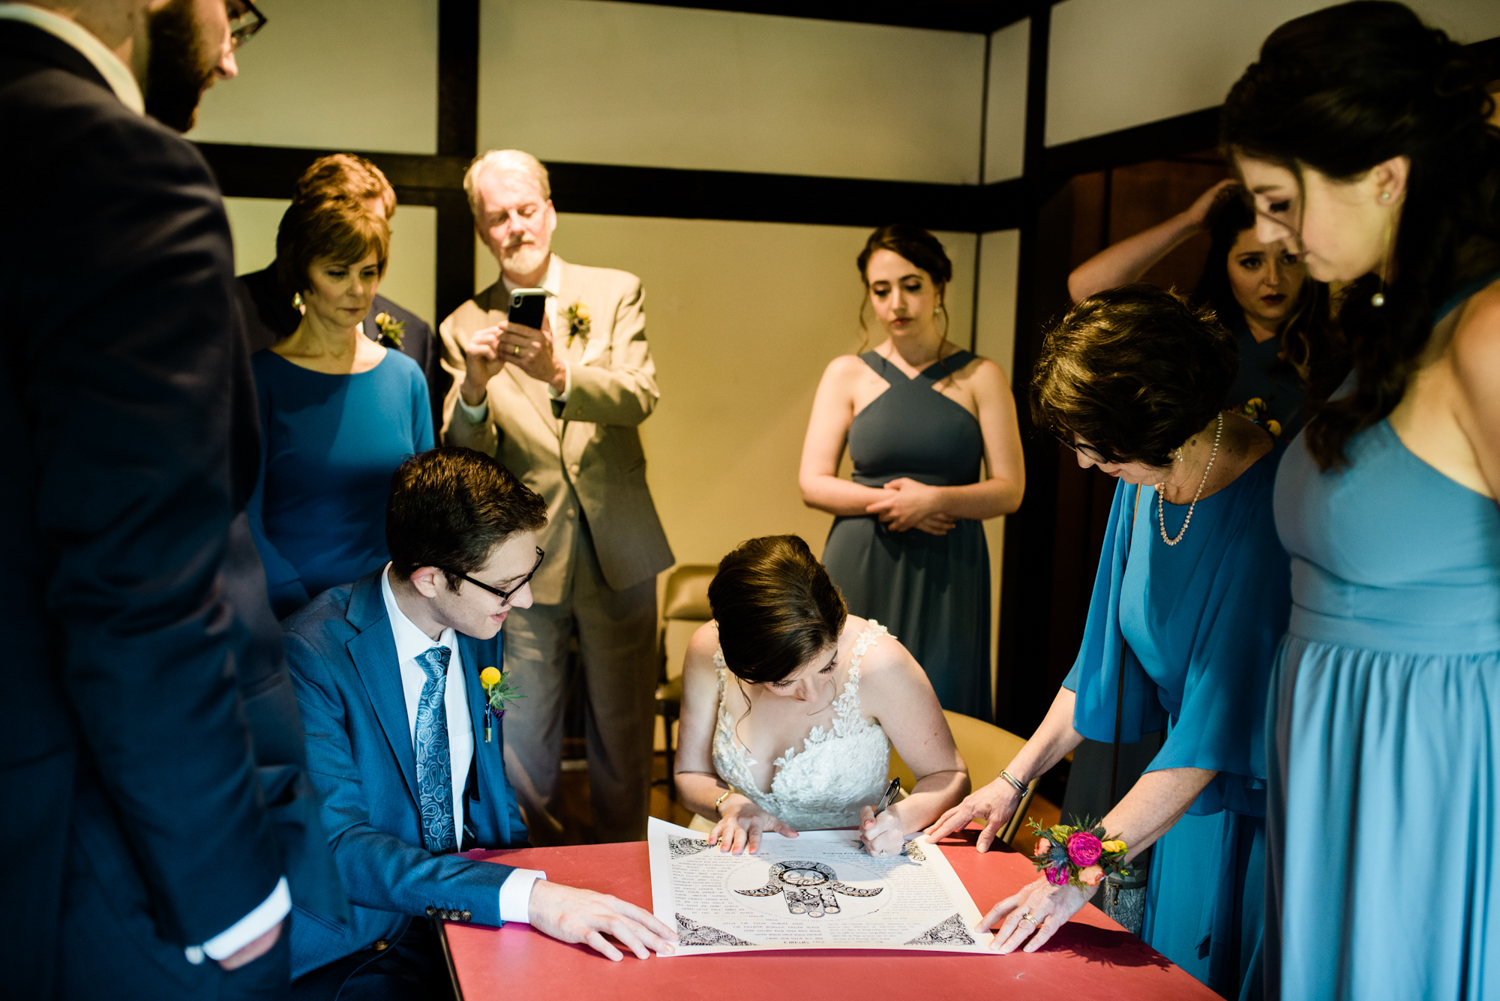 Spring_Piedmont_Community_Hall_Wedding_015.jpg